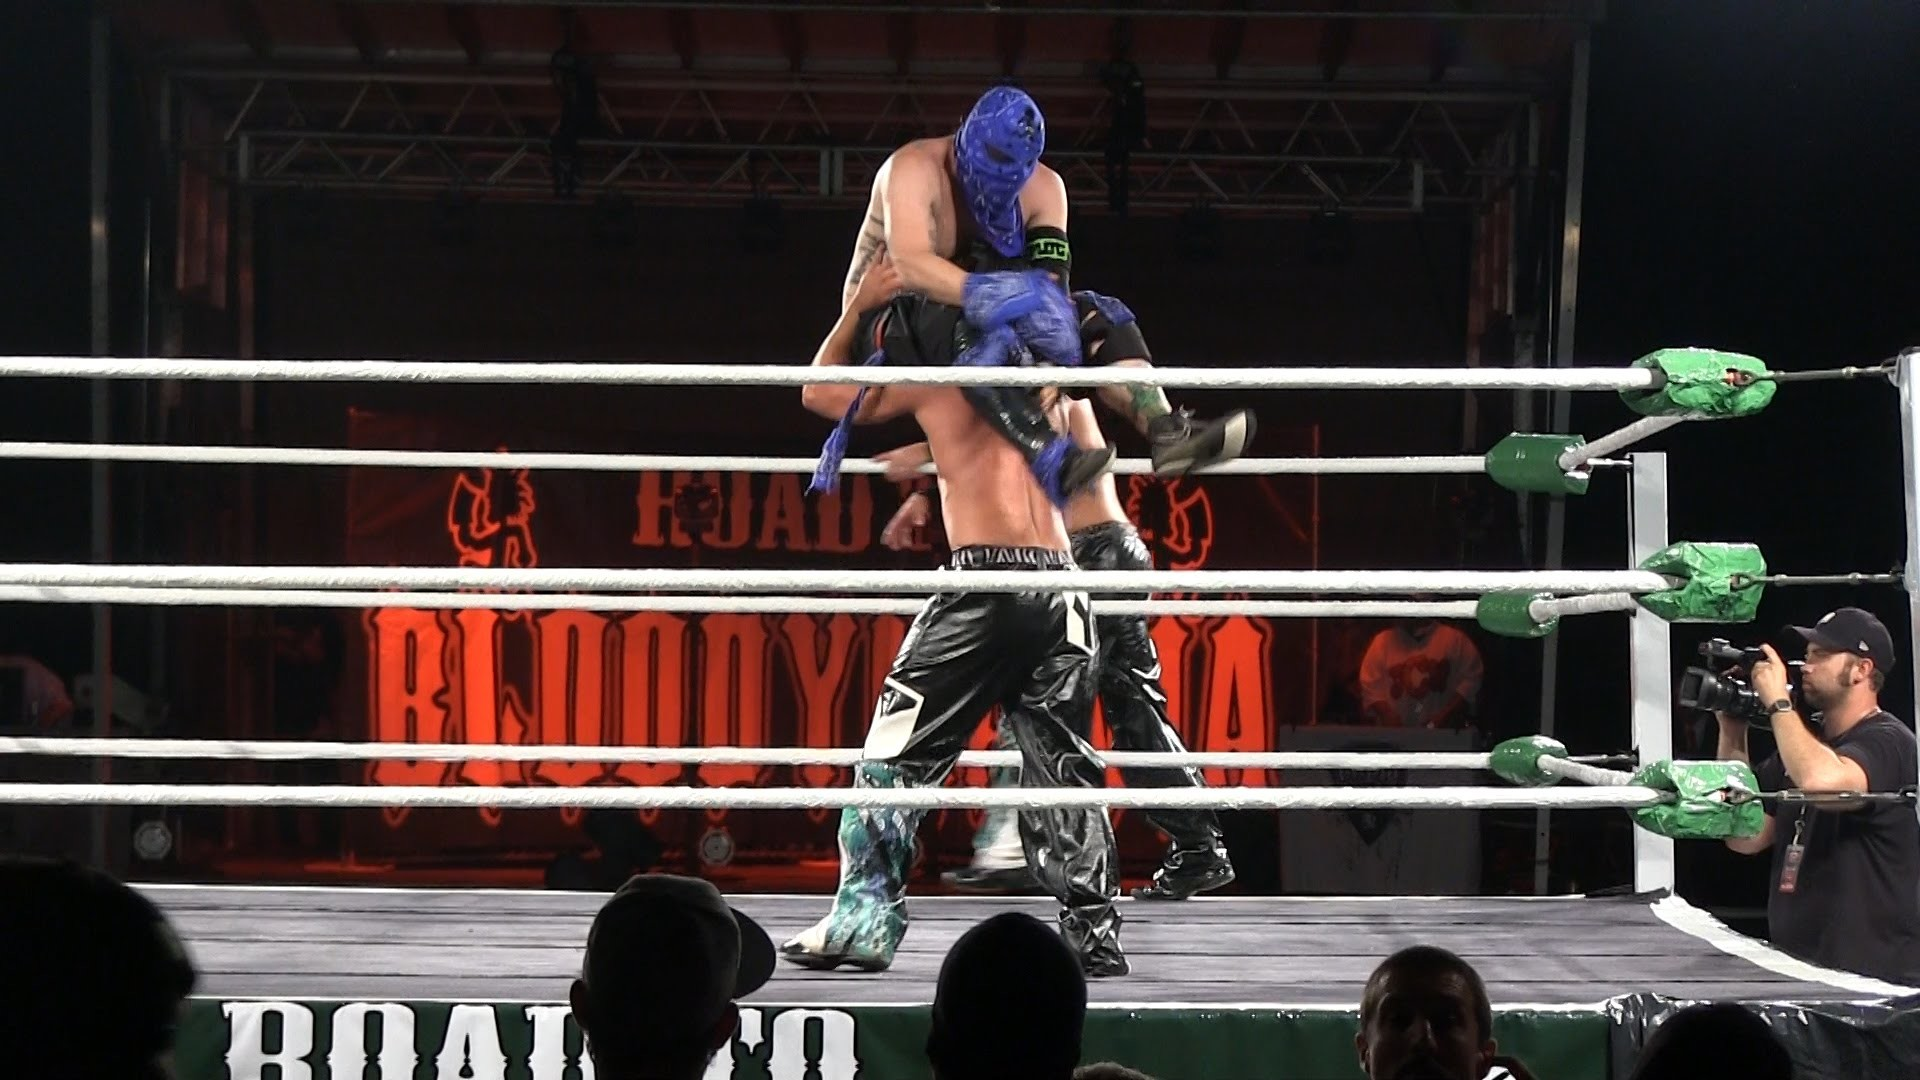 The Young Bucks Vs. The Ring Rydas – HD – Gathering of the Juggalos